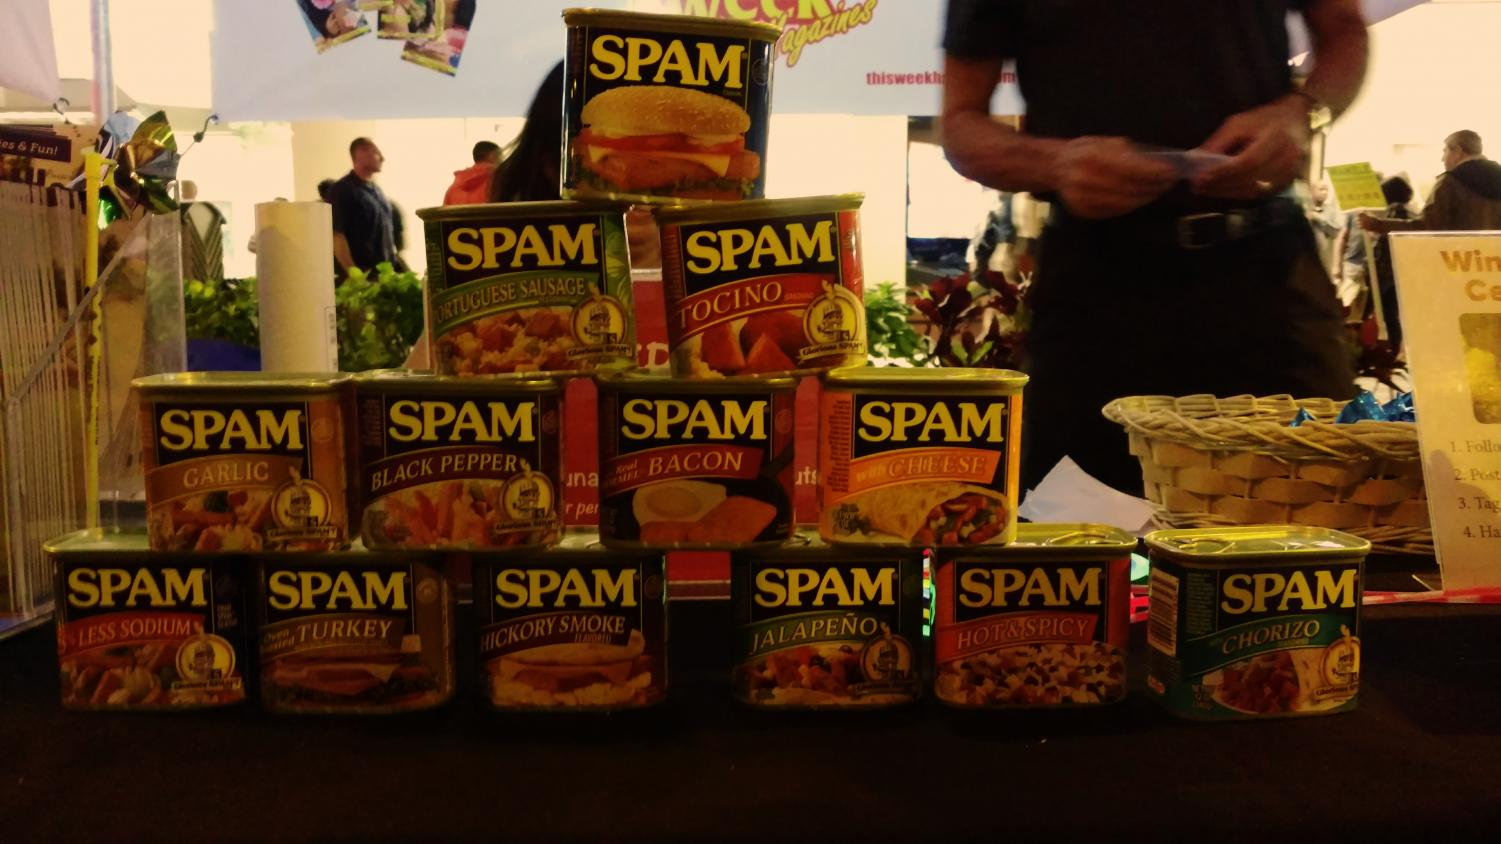 Here are the many flavors of Spam.